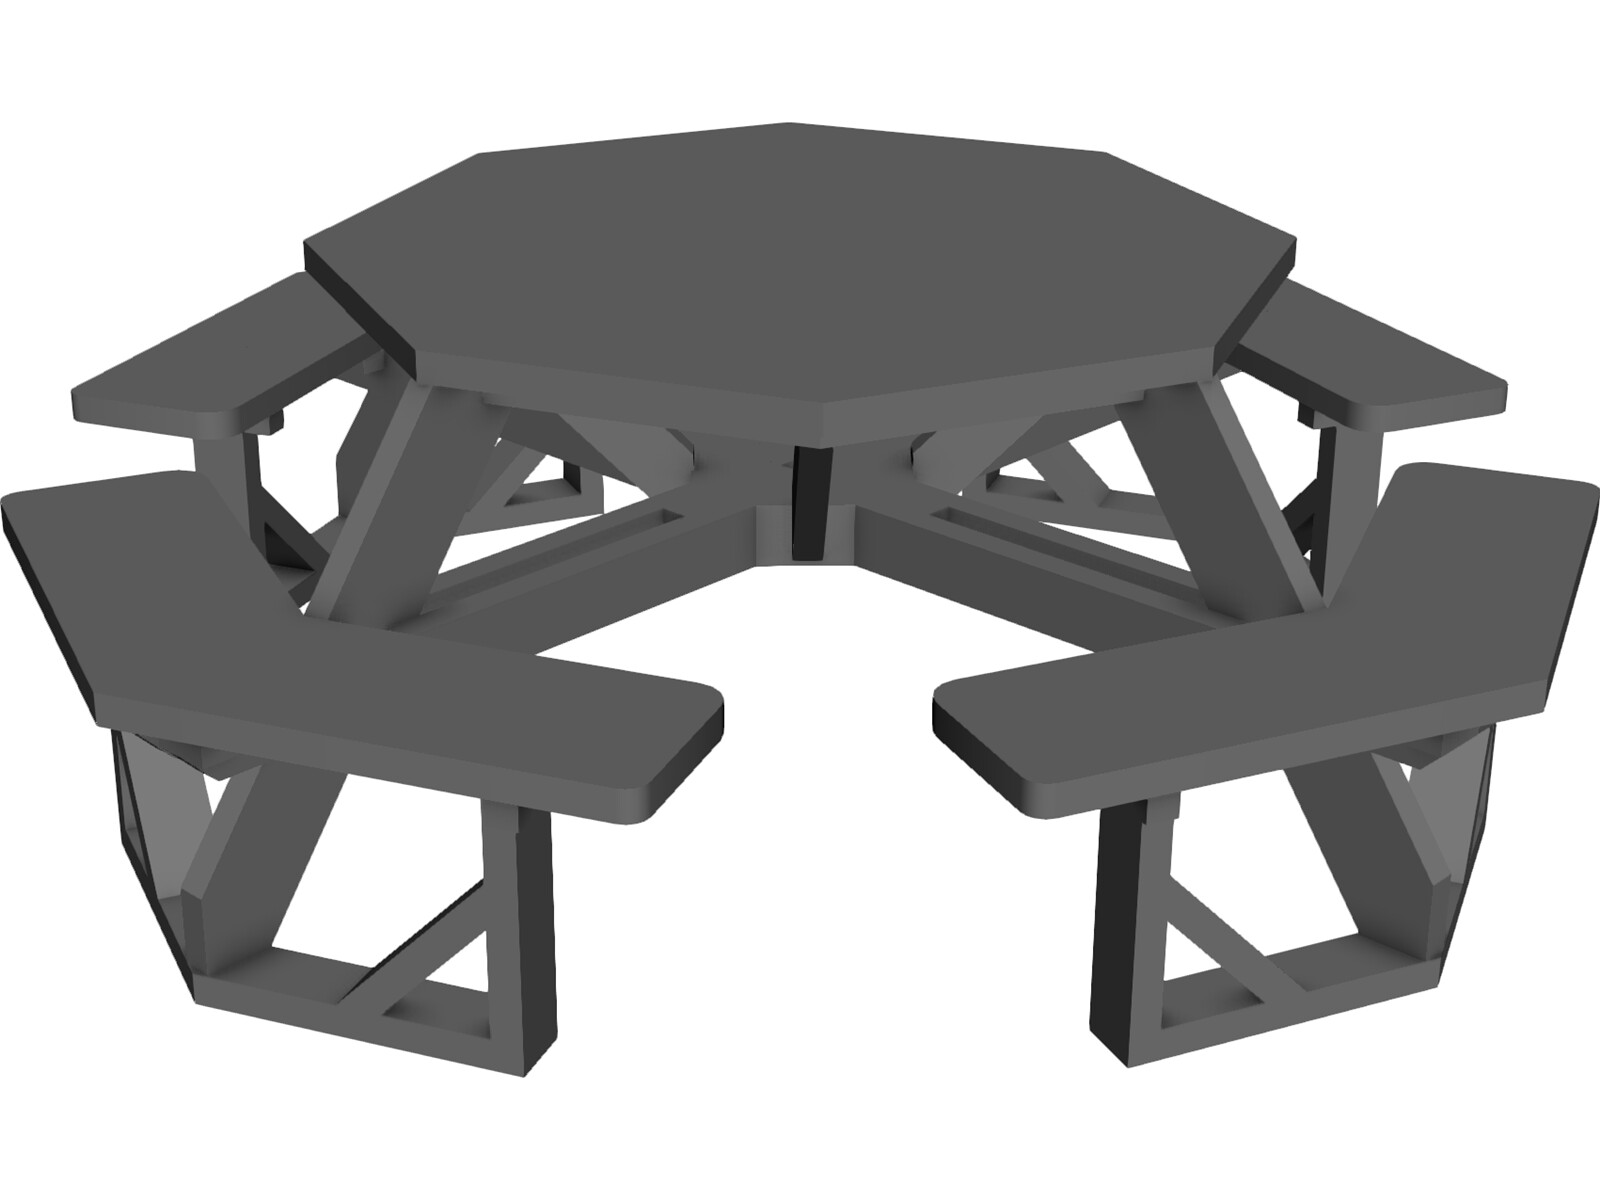 octogonal garden table 3d model